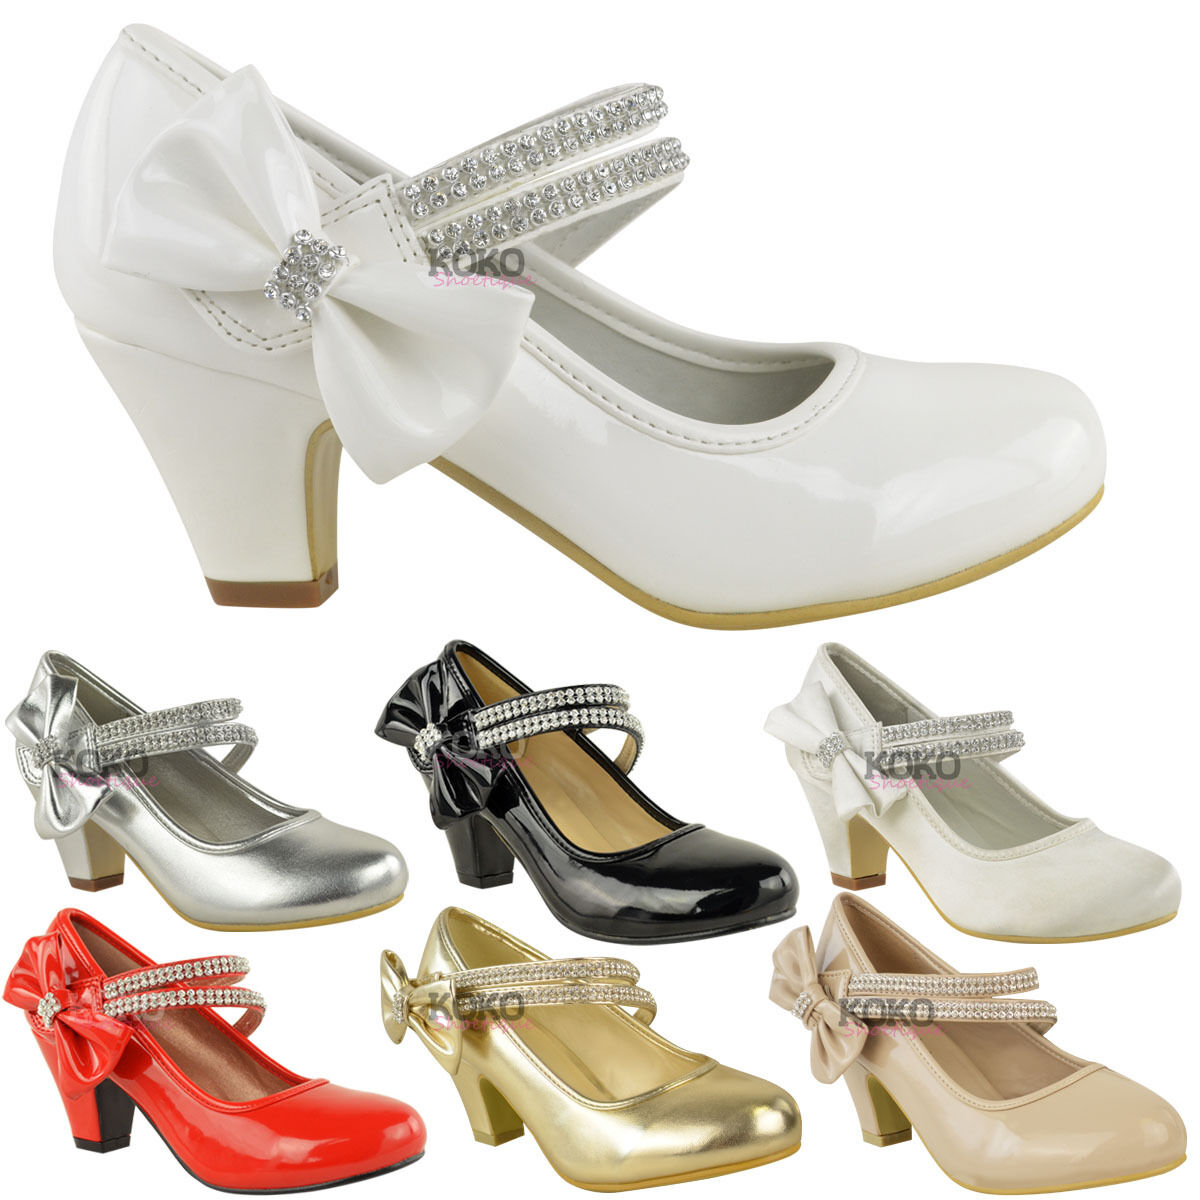 KIDS CHILDRENS GIRLS WEDDING PARTY DIAMANTE BOW LOW MID HEEL SHOES SANDALS SIZE